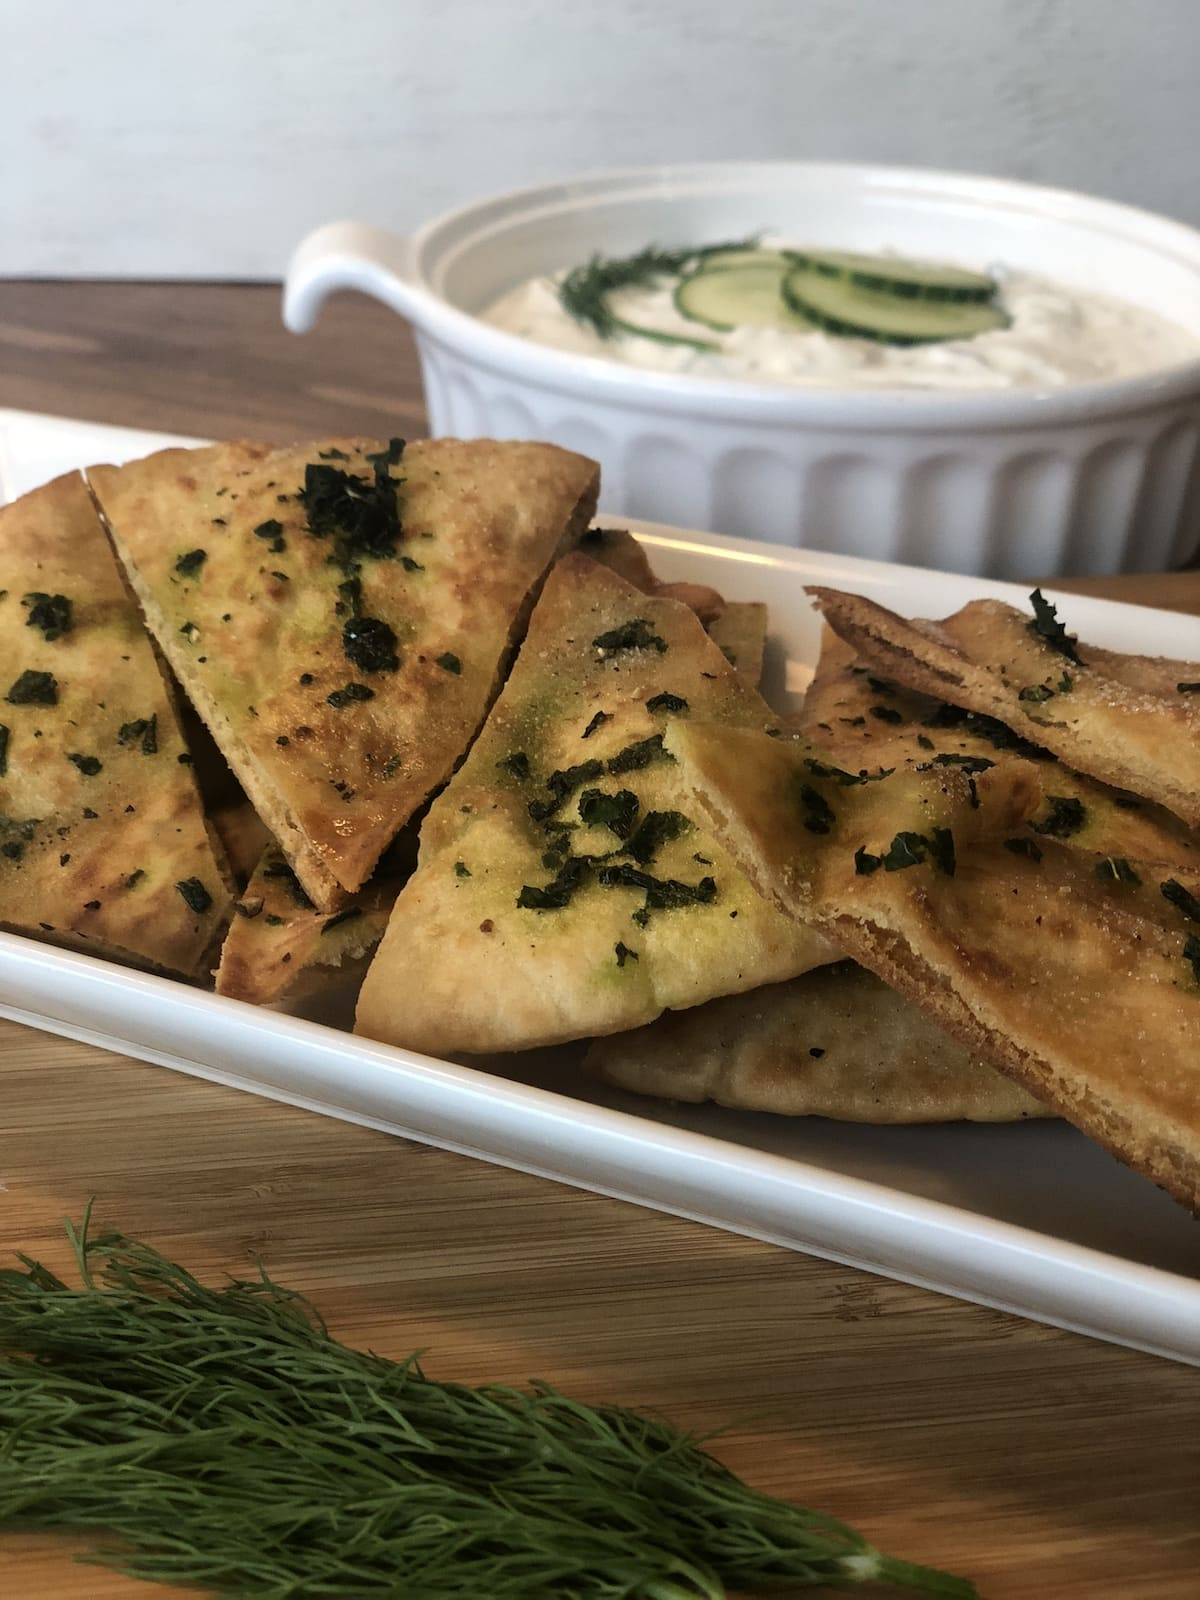 Greek Inspired Appetizers - Tzatziki and Basil Pita Chips